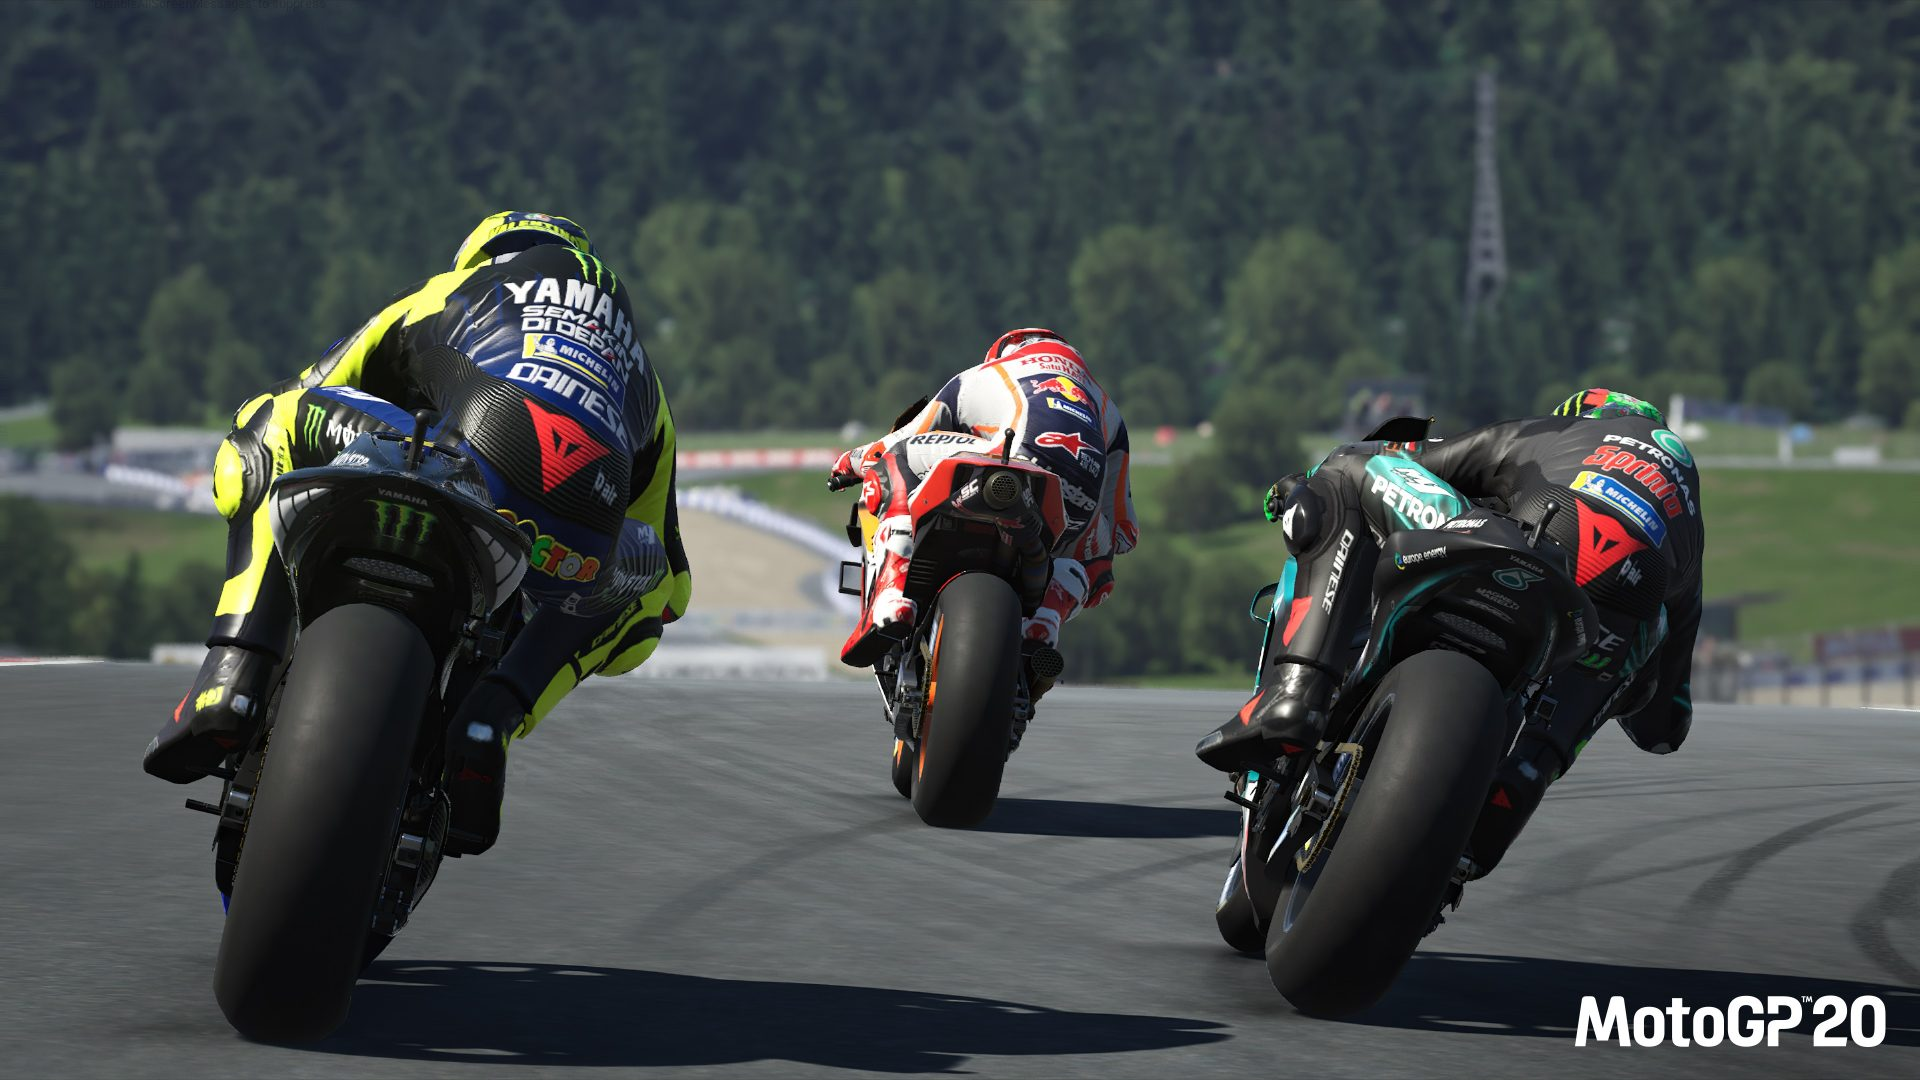 Motogp 20 Launching April 23 Across Ps4 Xbox One Pc Stadia And Switch Team Vvv